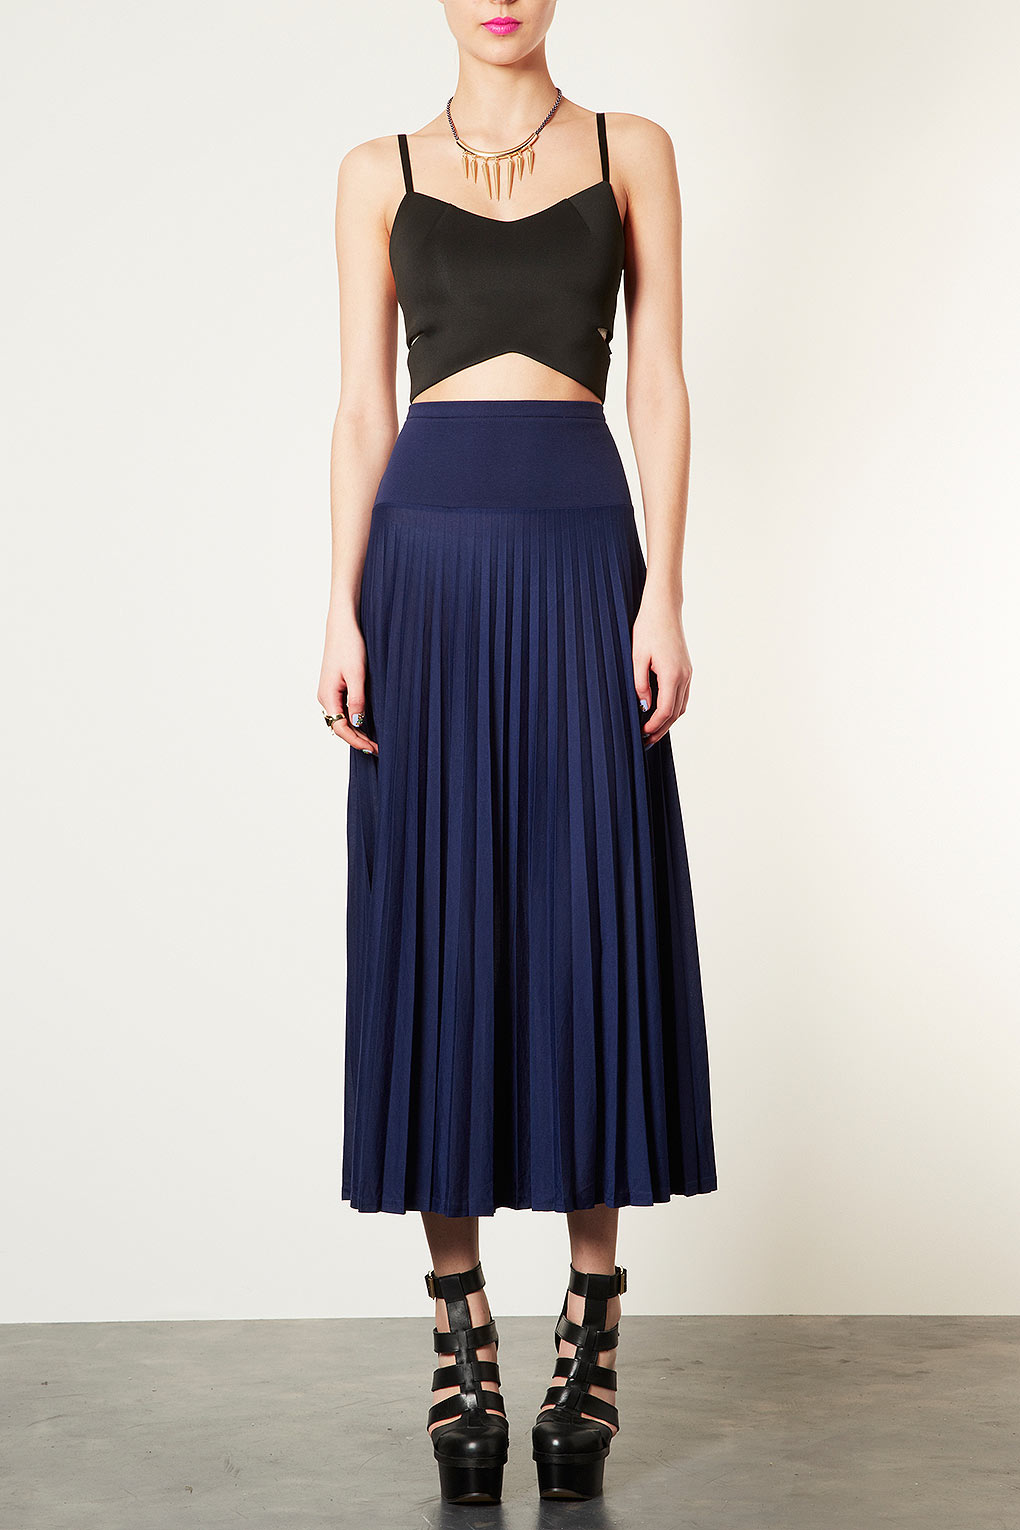 Topshop High Waist Pleated Maxi Skirt in Blue | Lyst